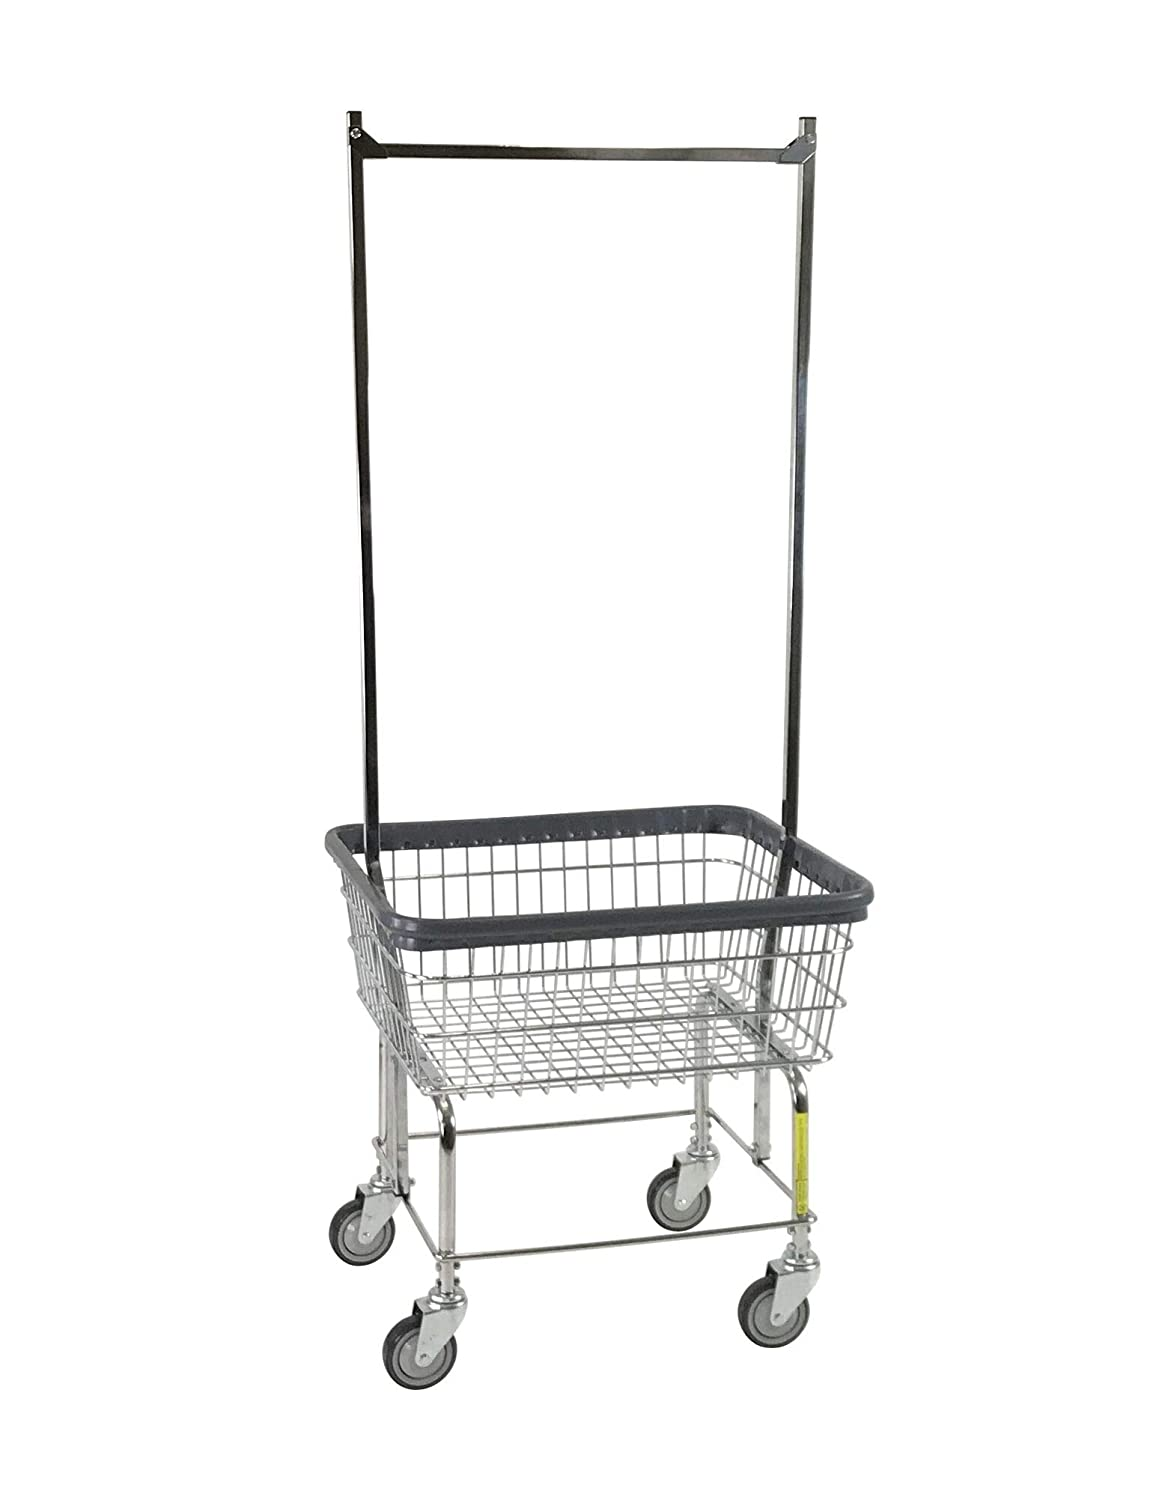 R B Wire 96B58 Light-Duty Wire Frame Metal Laundry Cart with Double Pole Rack – Chrome